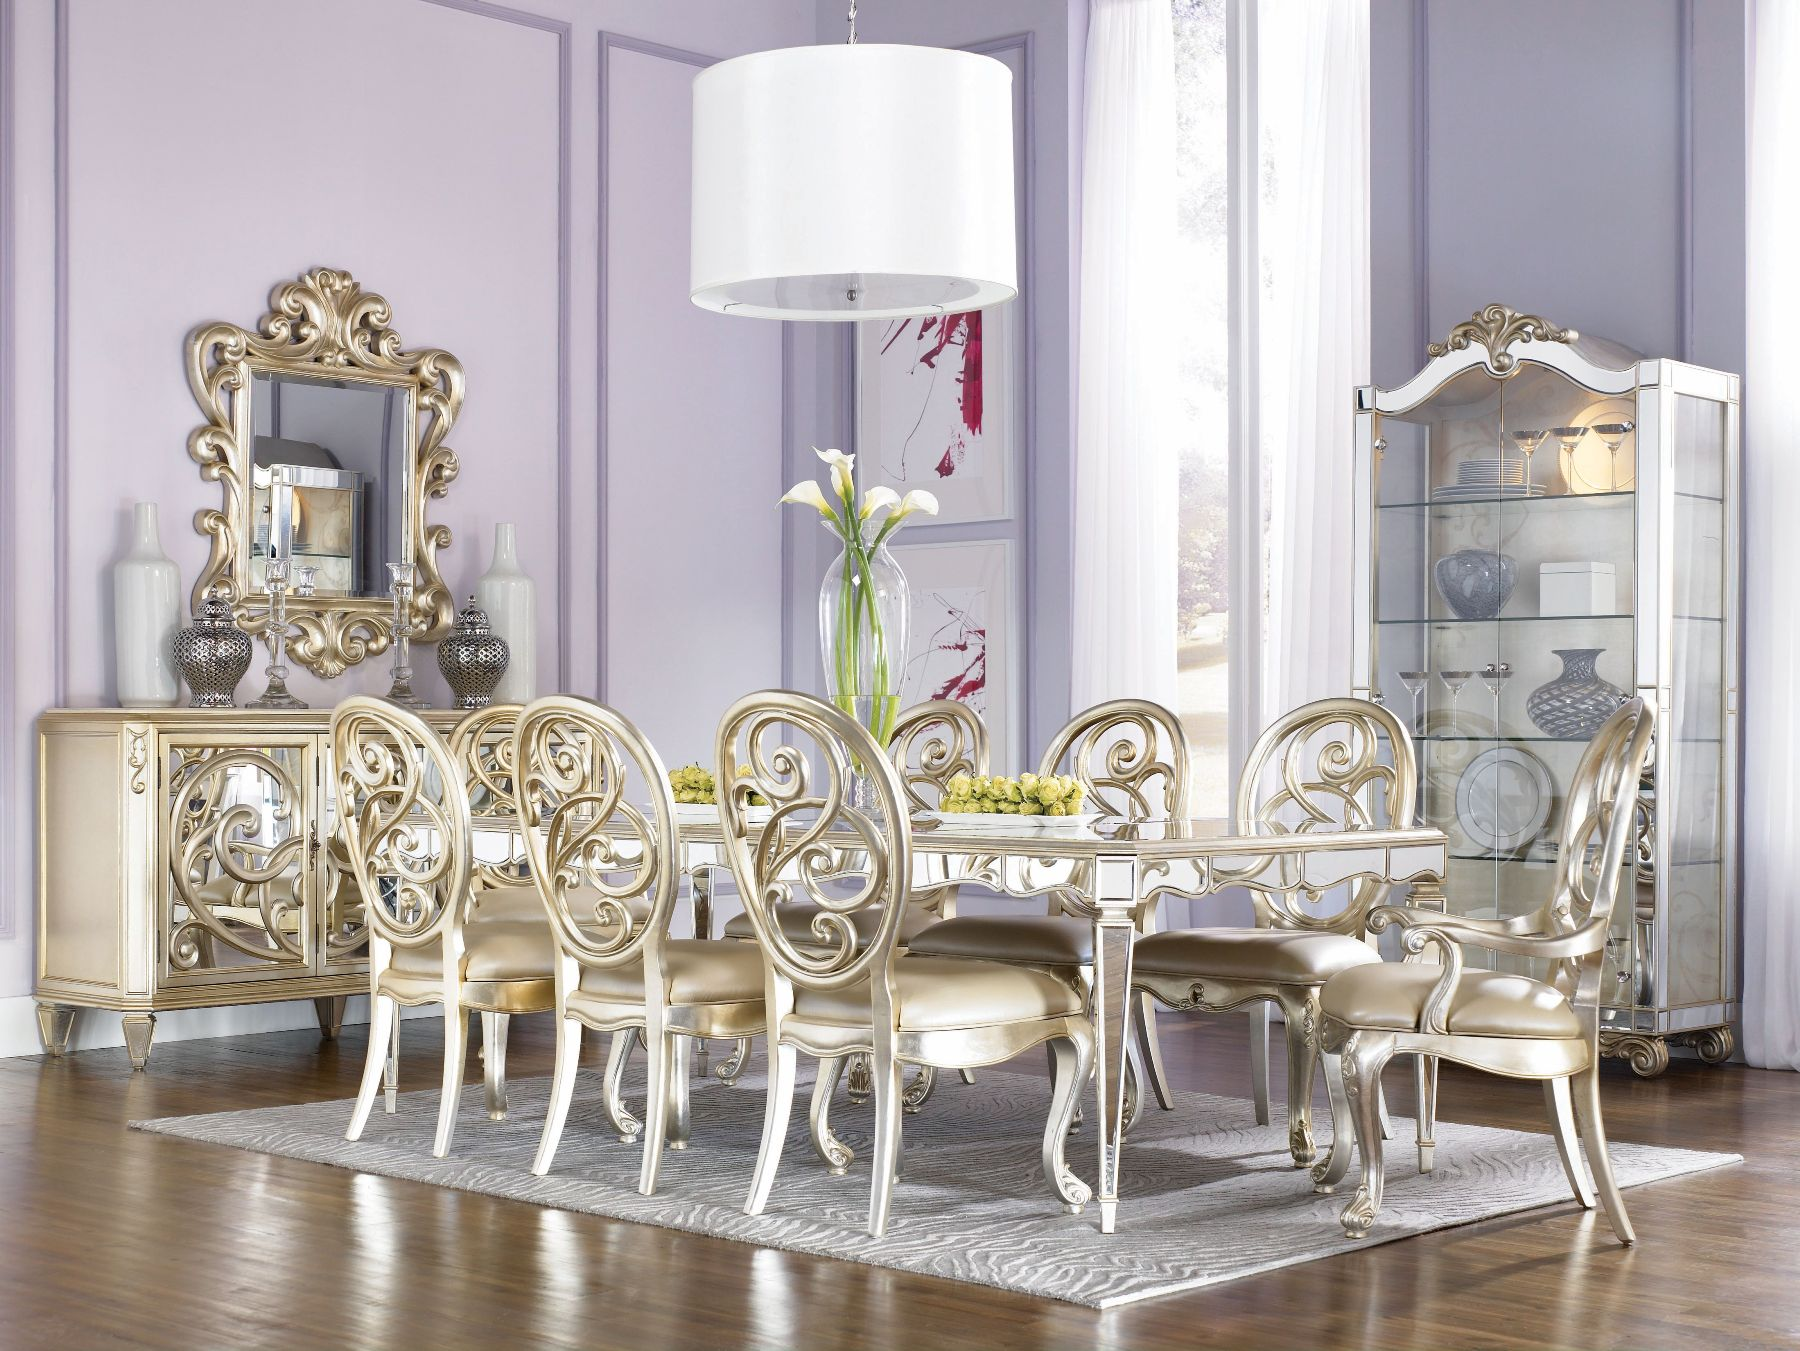 Picture of: Top 12 Astonishing Luxury Dining Room Ideas That Wows